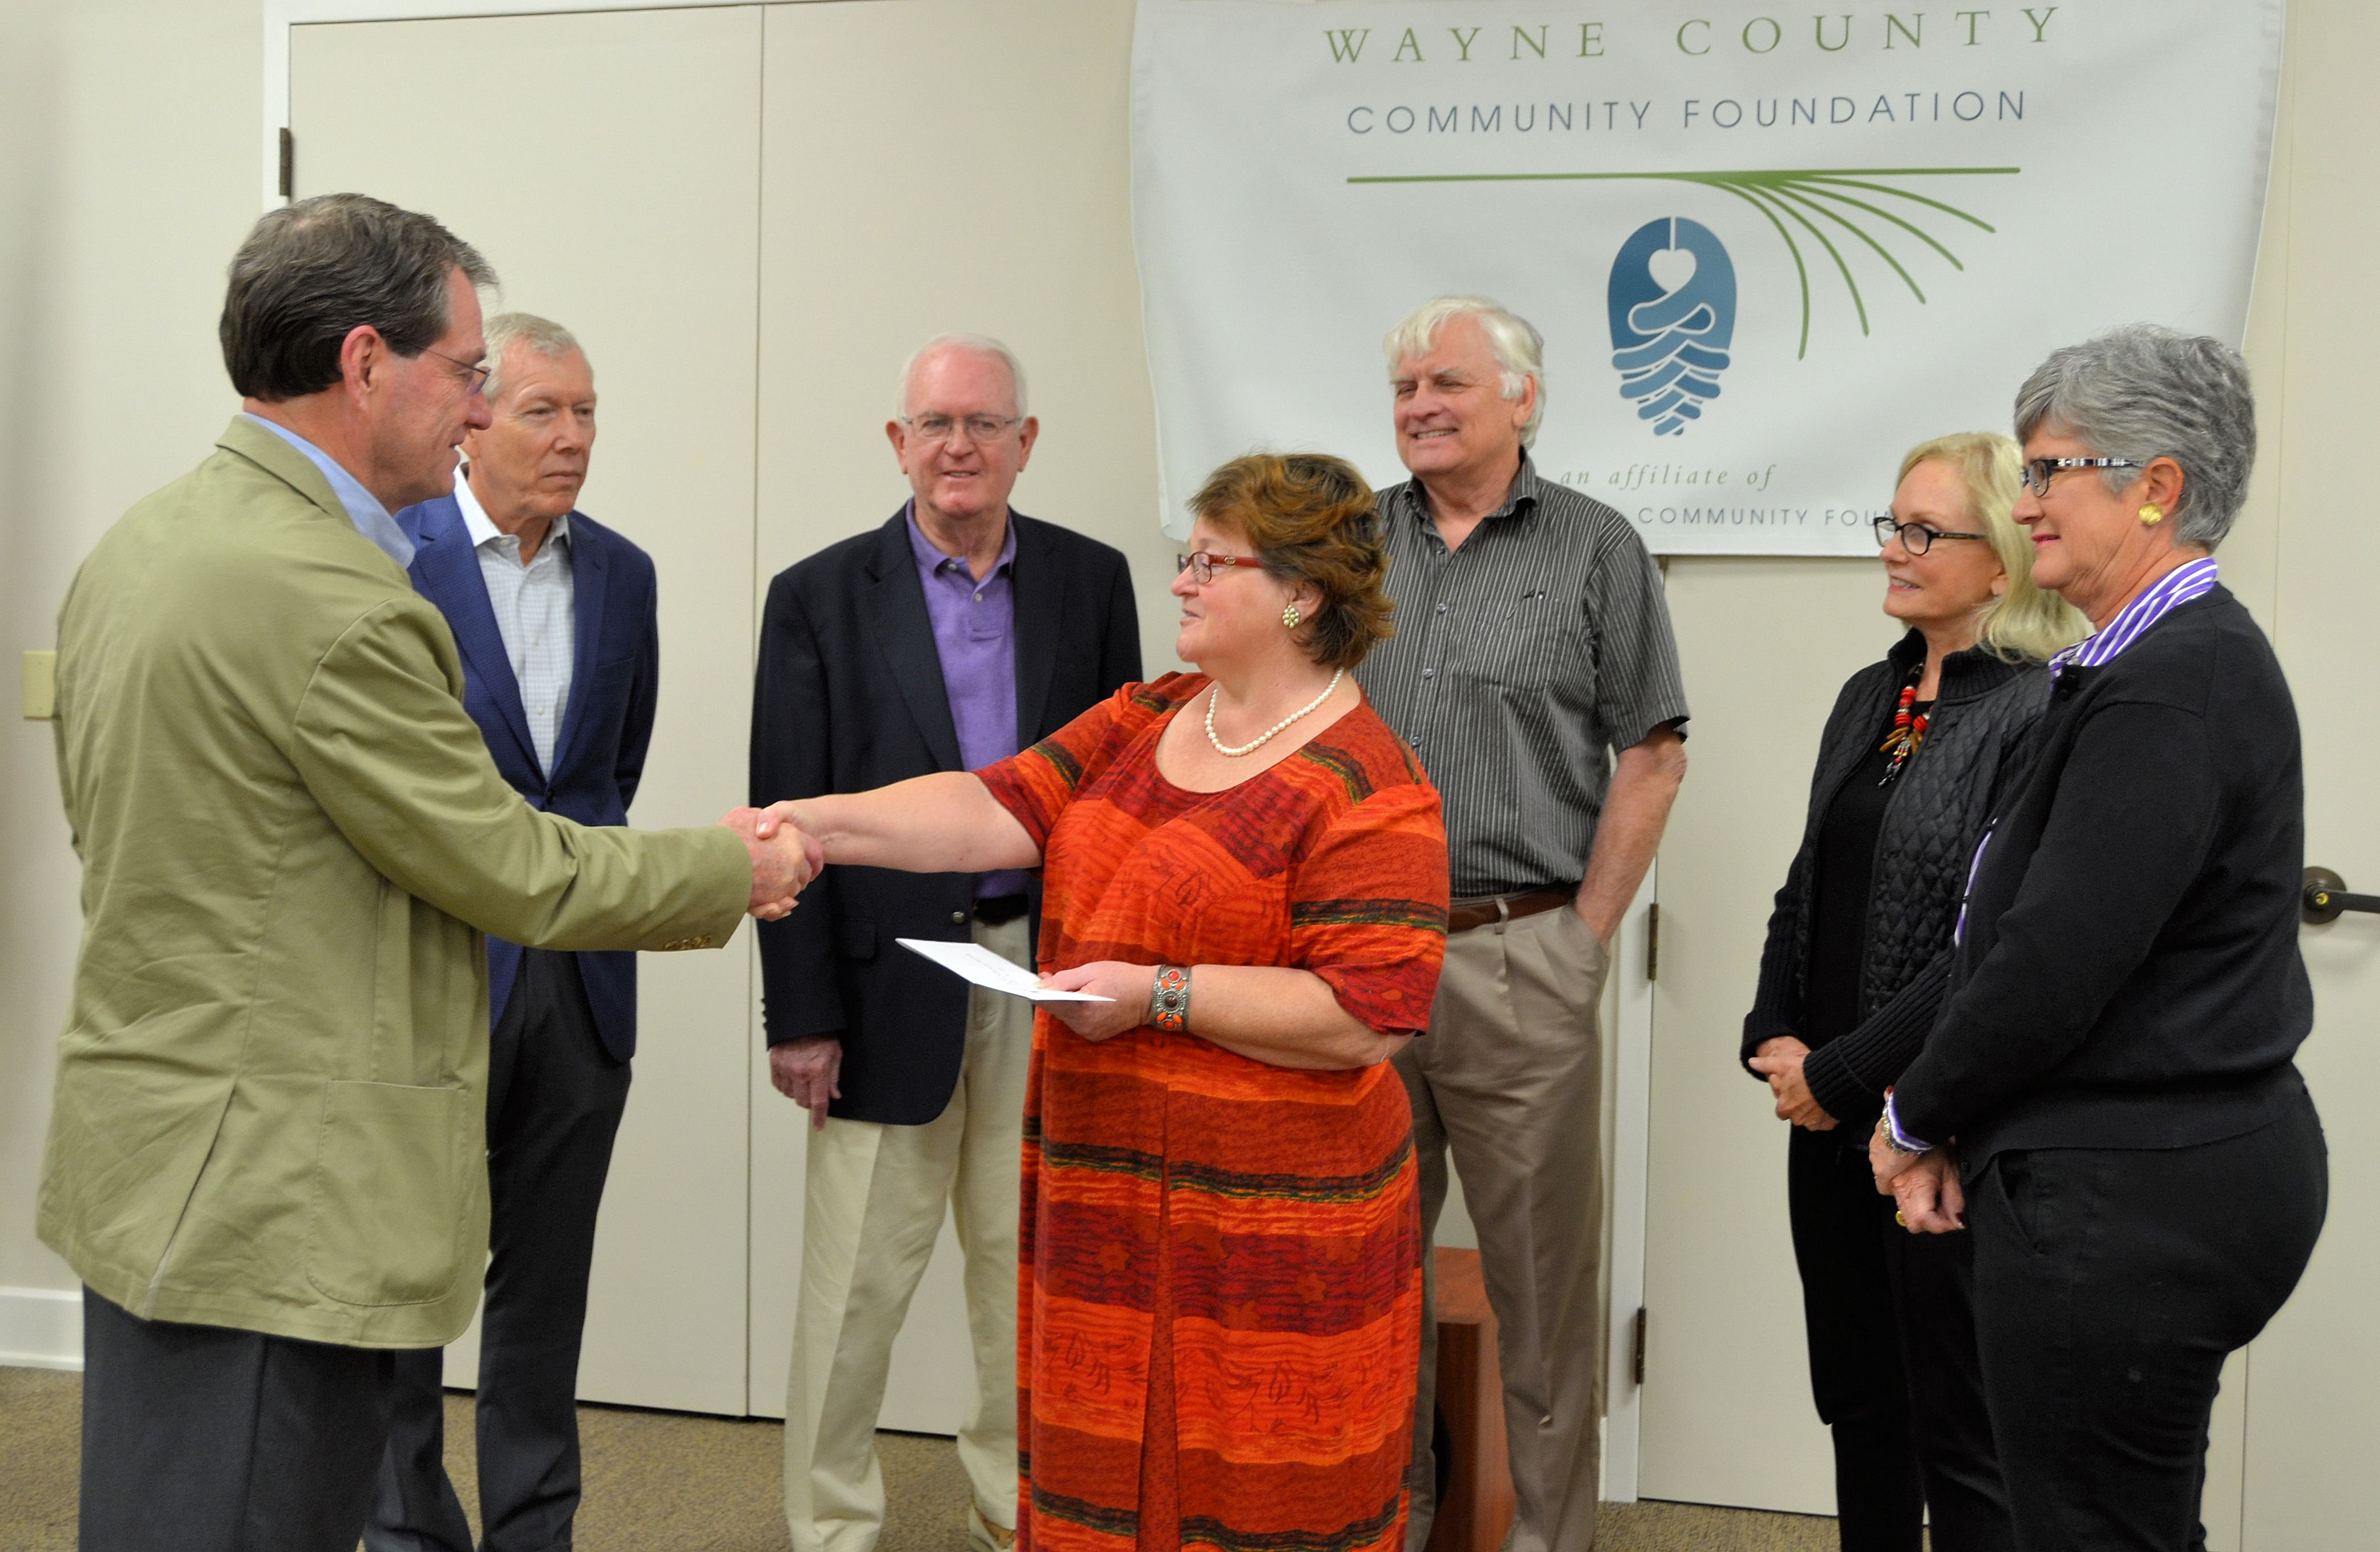 Bob Logan, president of the Wayne County Community Foundation, presents a check from NCCF's Disaster Relief Fund to Barbara Stiles of Wayne County's Long Term Recovery Group.